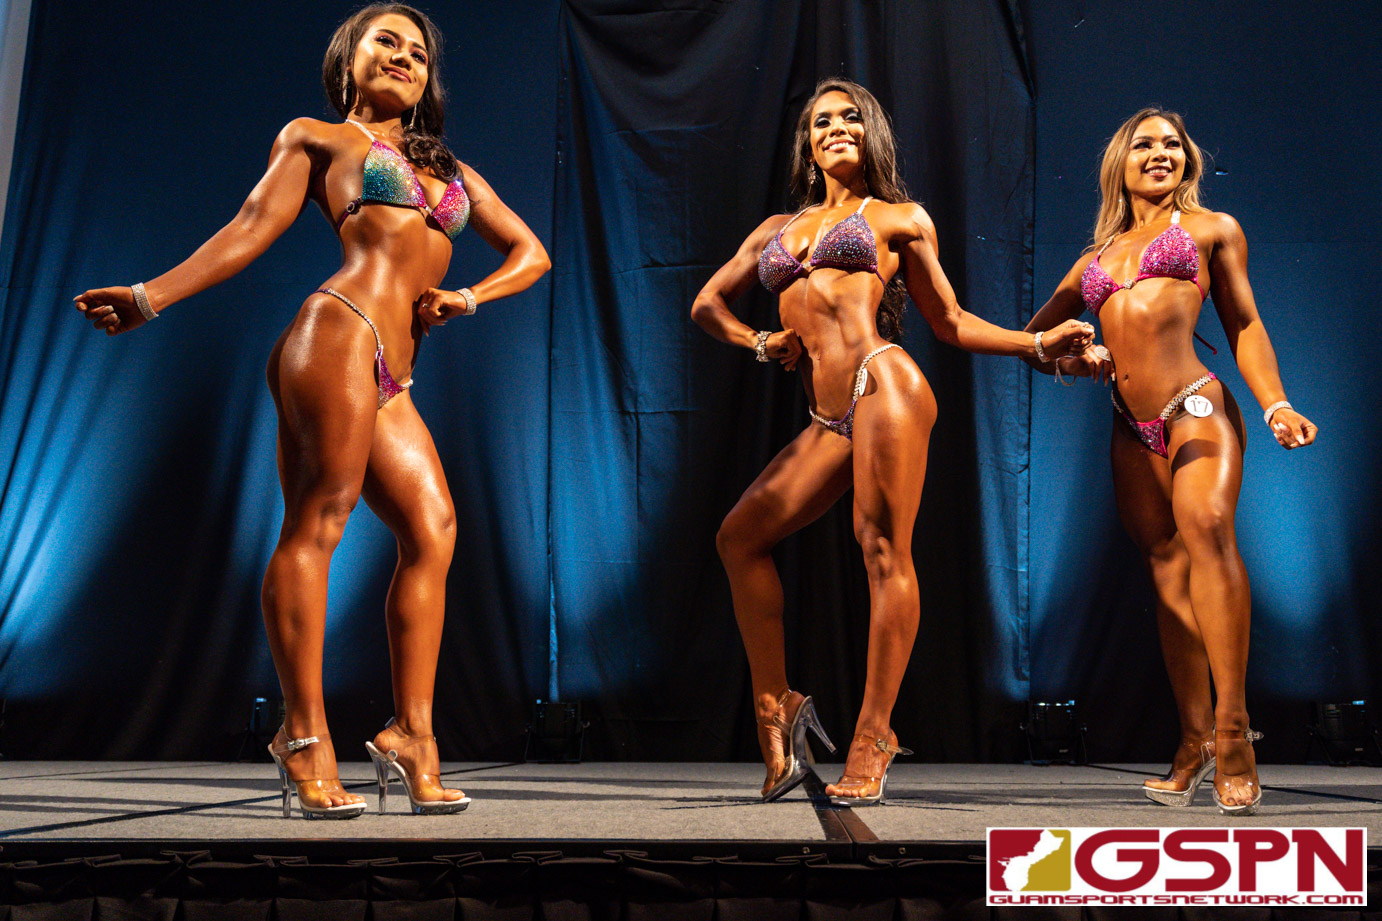 WOLFORD TWINS WIN BIG, MESA RETAINS TITLE IN 2019 NPC